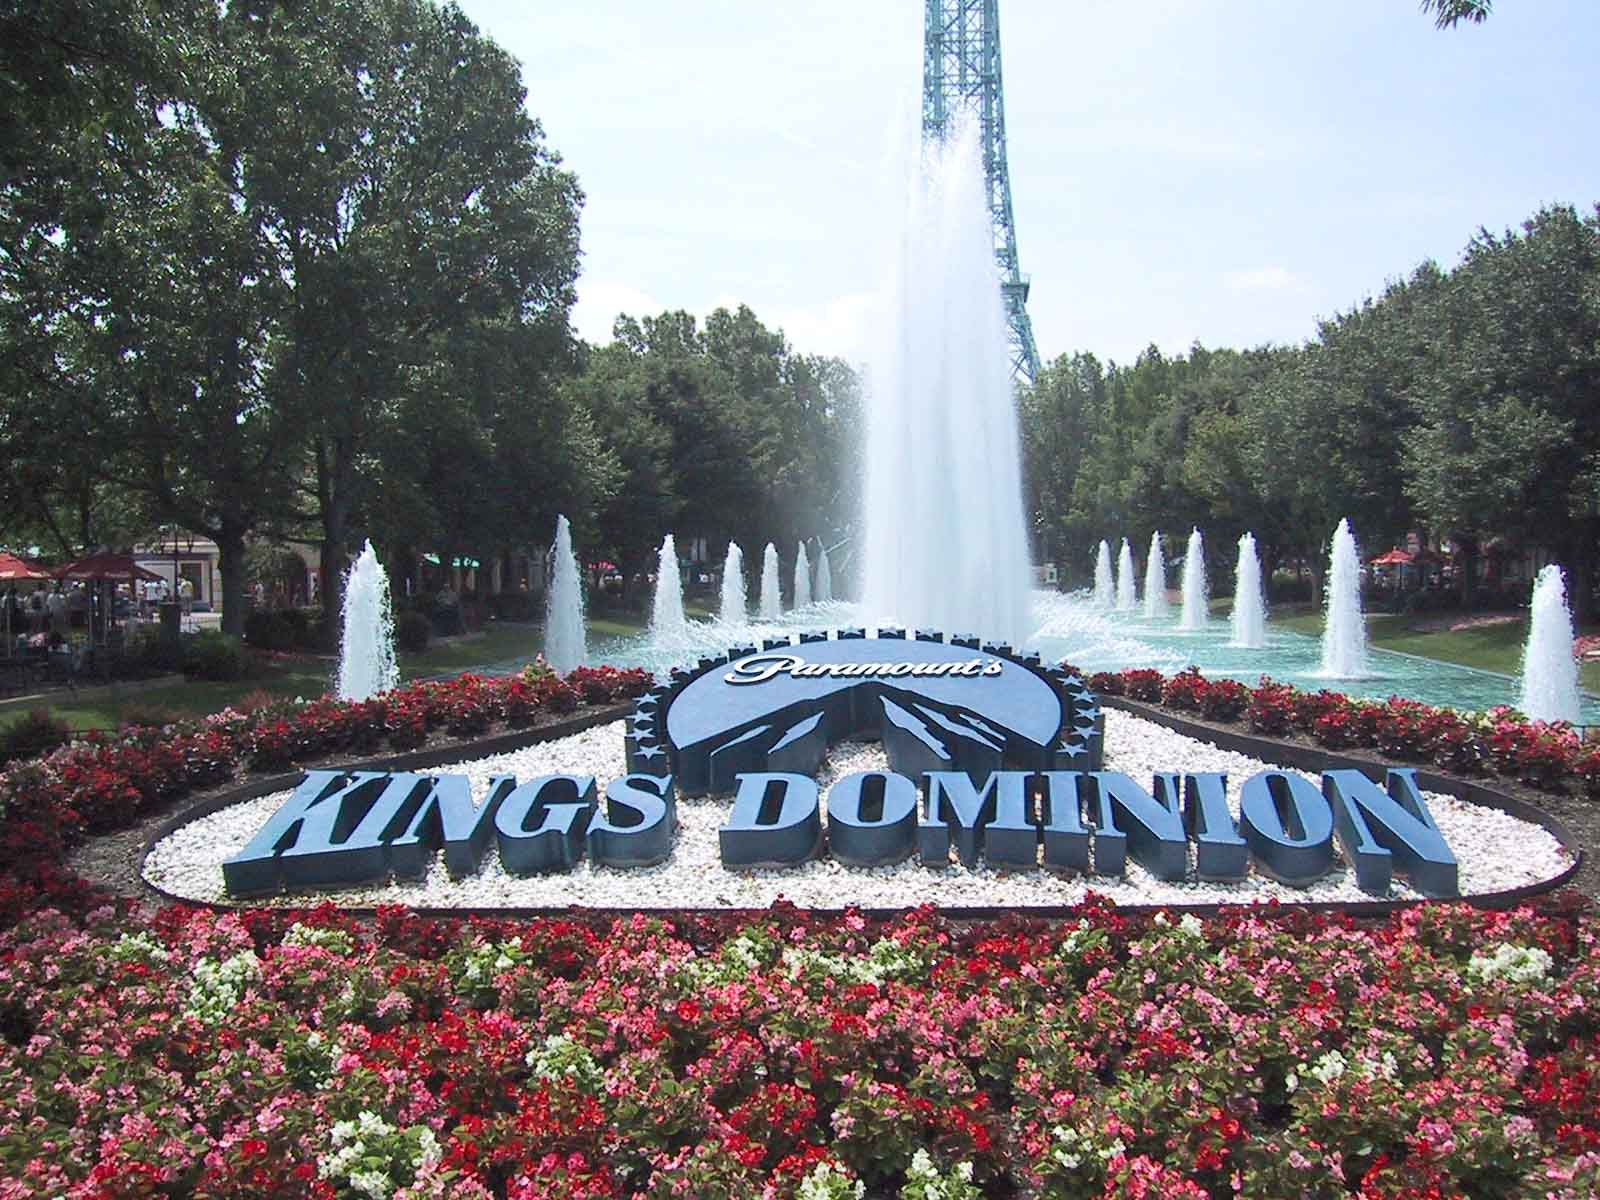 Paramounts Kings Dominion Seating Chart View the Paramounts Kings Dominion seating chart in Doswell, VA and then find your favorite event and a more detailed seating chart with available seats by finding your favorite Paramounts Kings Dominion event in the above ticket listings.